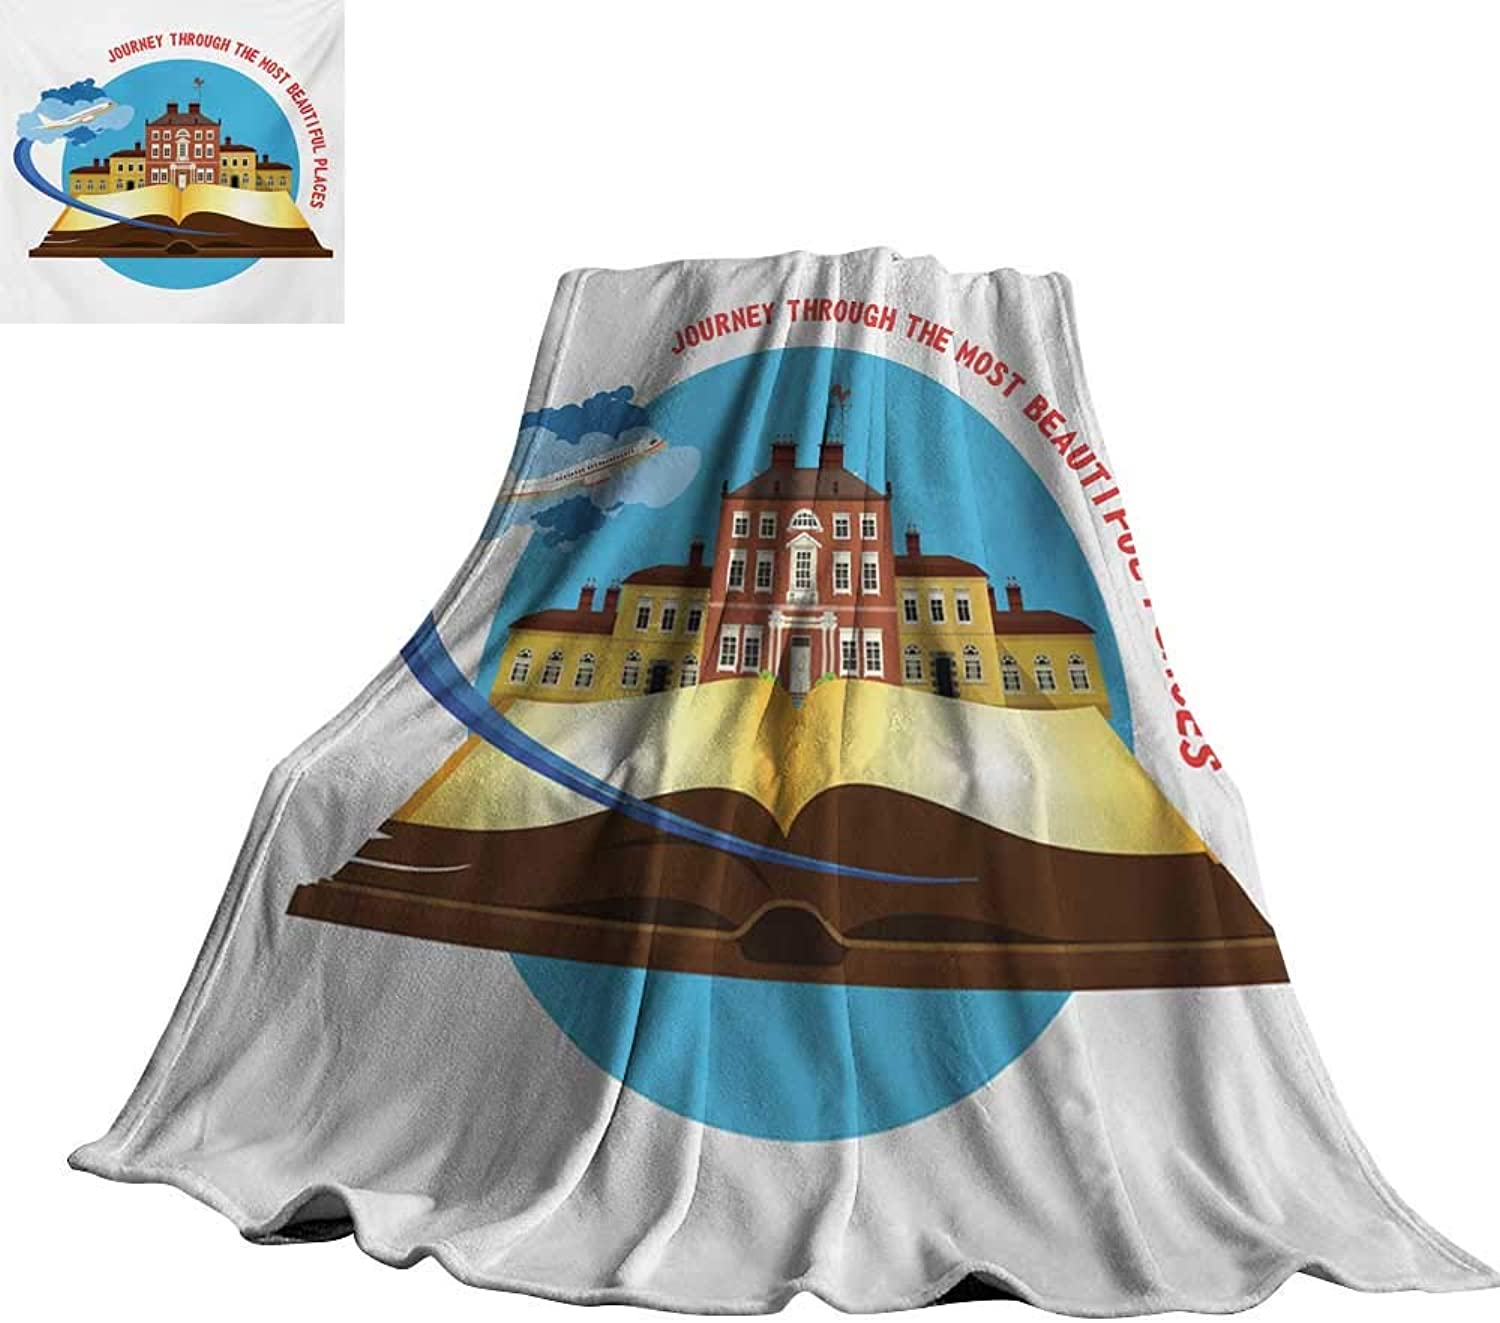 RenteriaDecor Travel,Blanket Journey Through The Most Beautiful Places Quote with Airplane Taking Off from a Book Plush Microfiber Blanket 60 x50